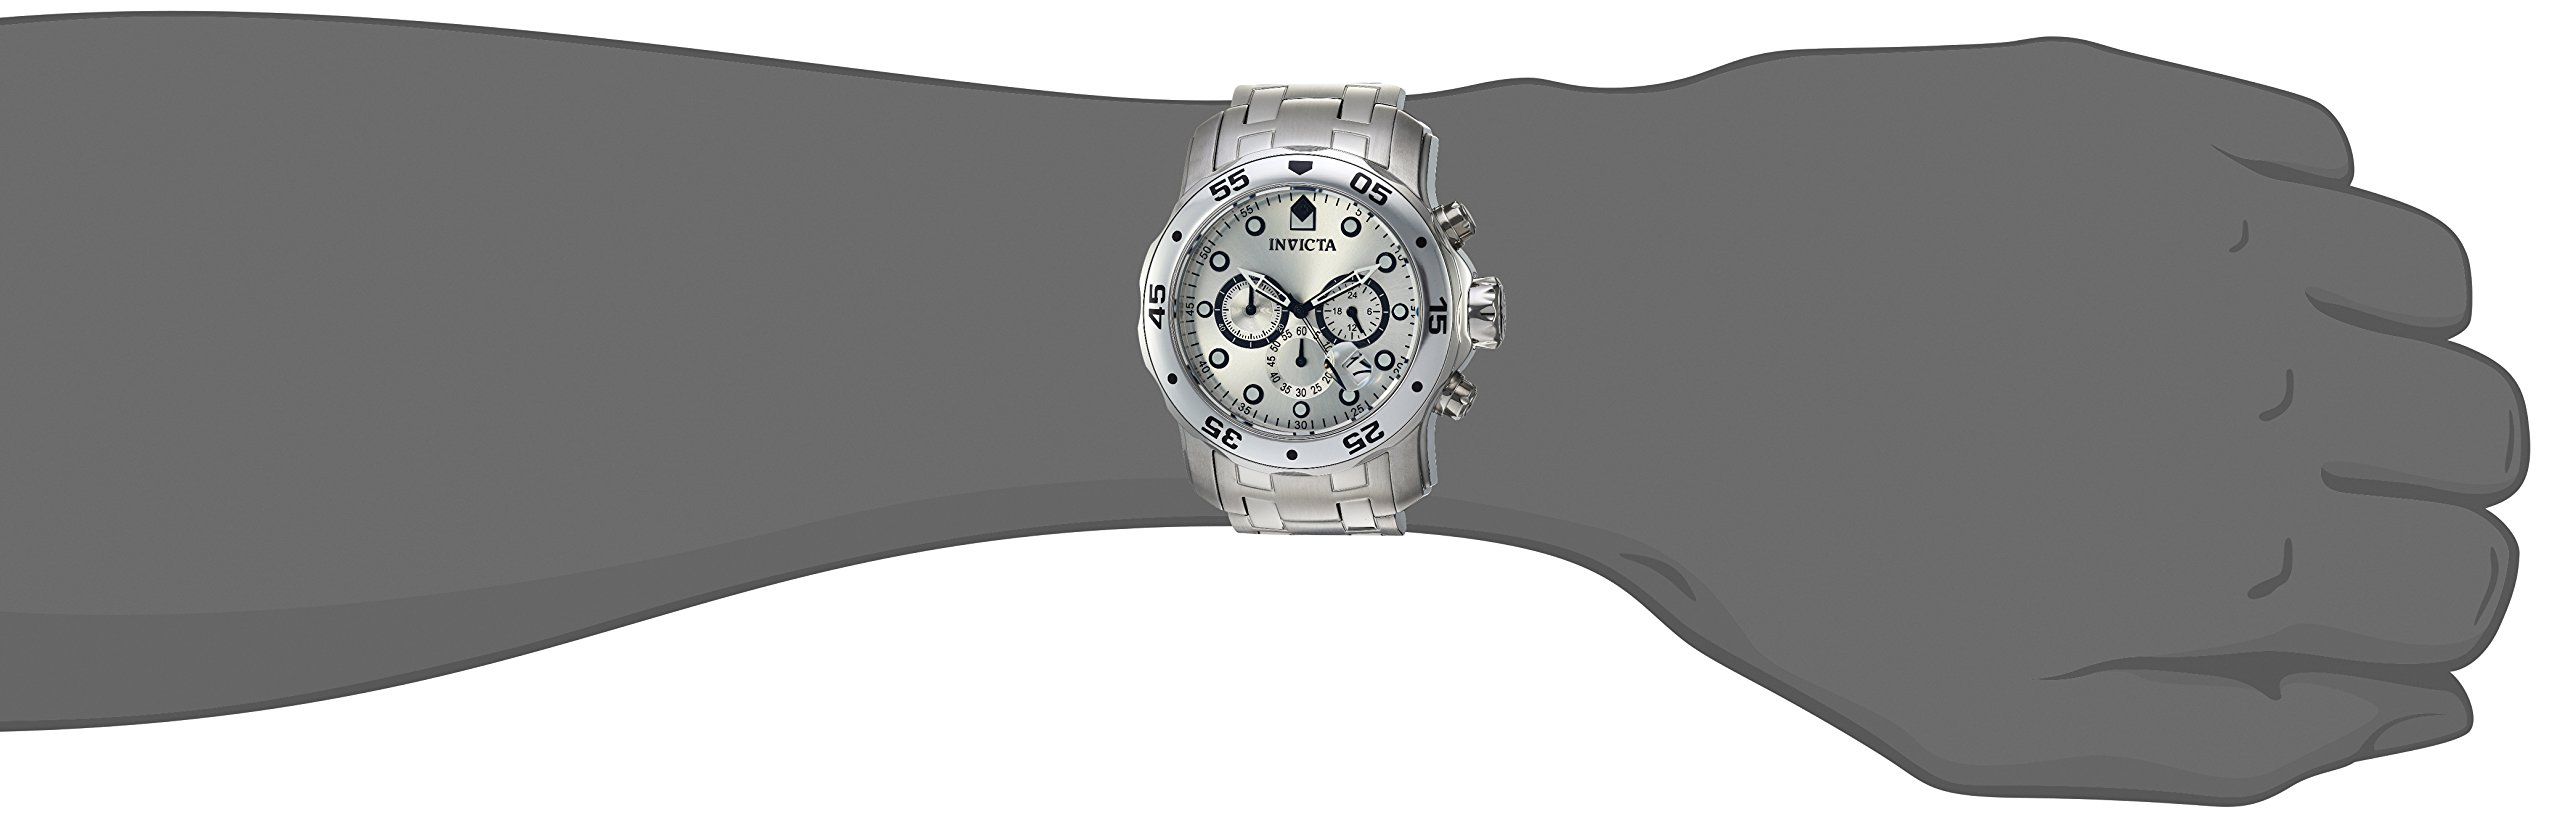 1ad87cdd7 Invicta Men's 0071 Pro Diver Collection Chronograph Stainless Steel Watch